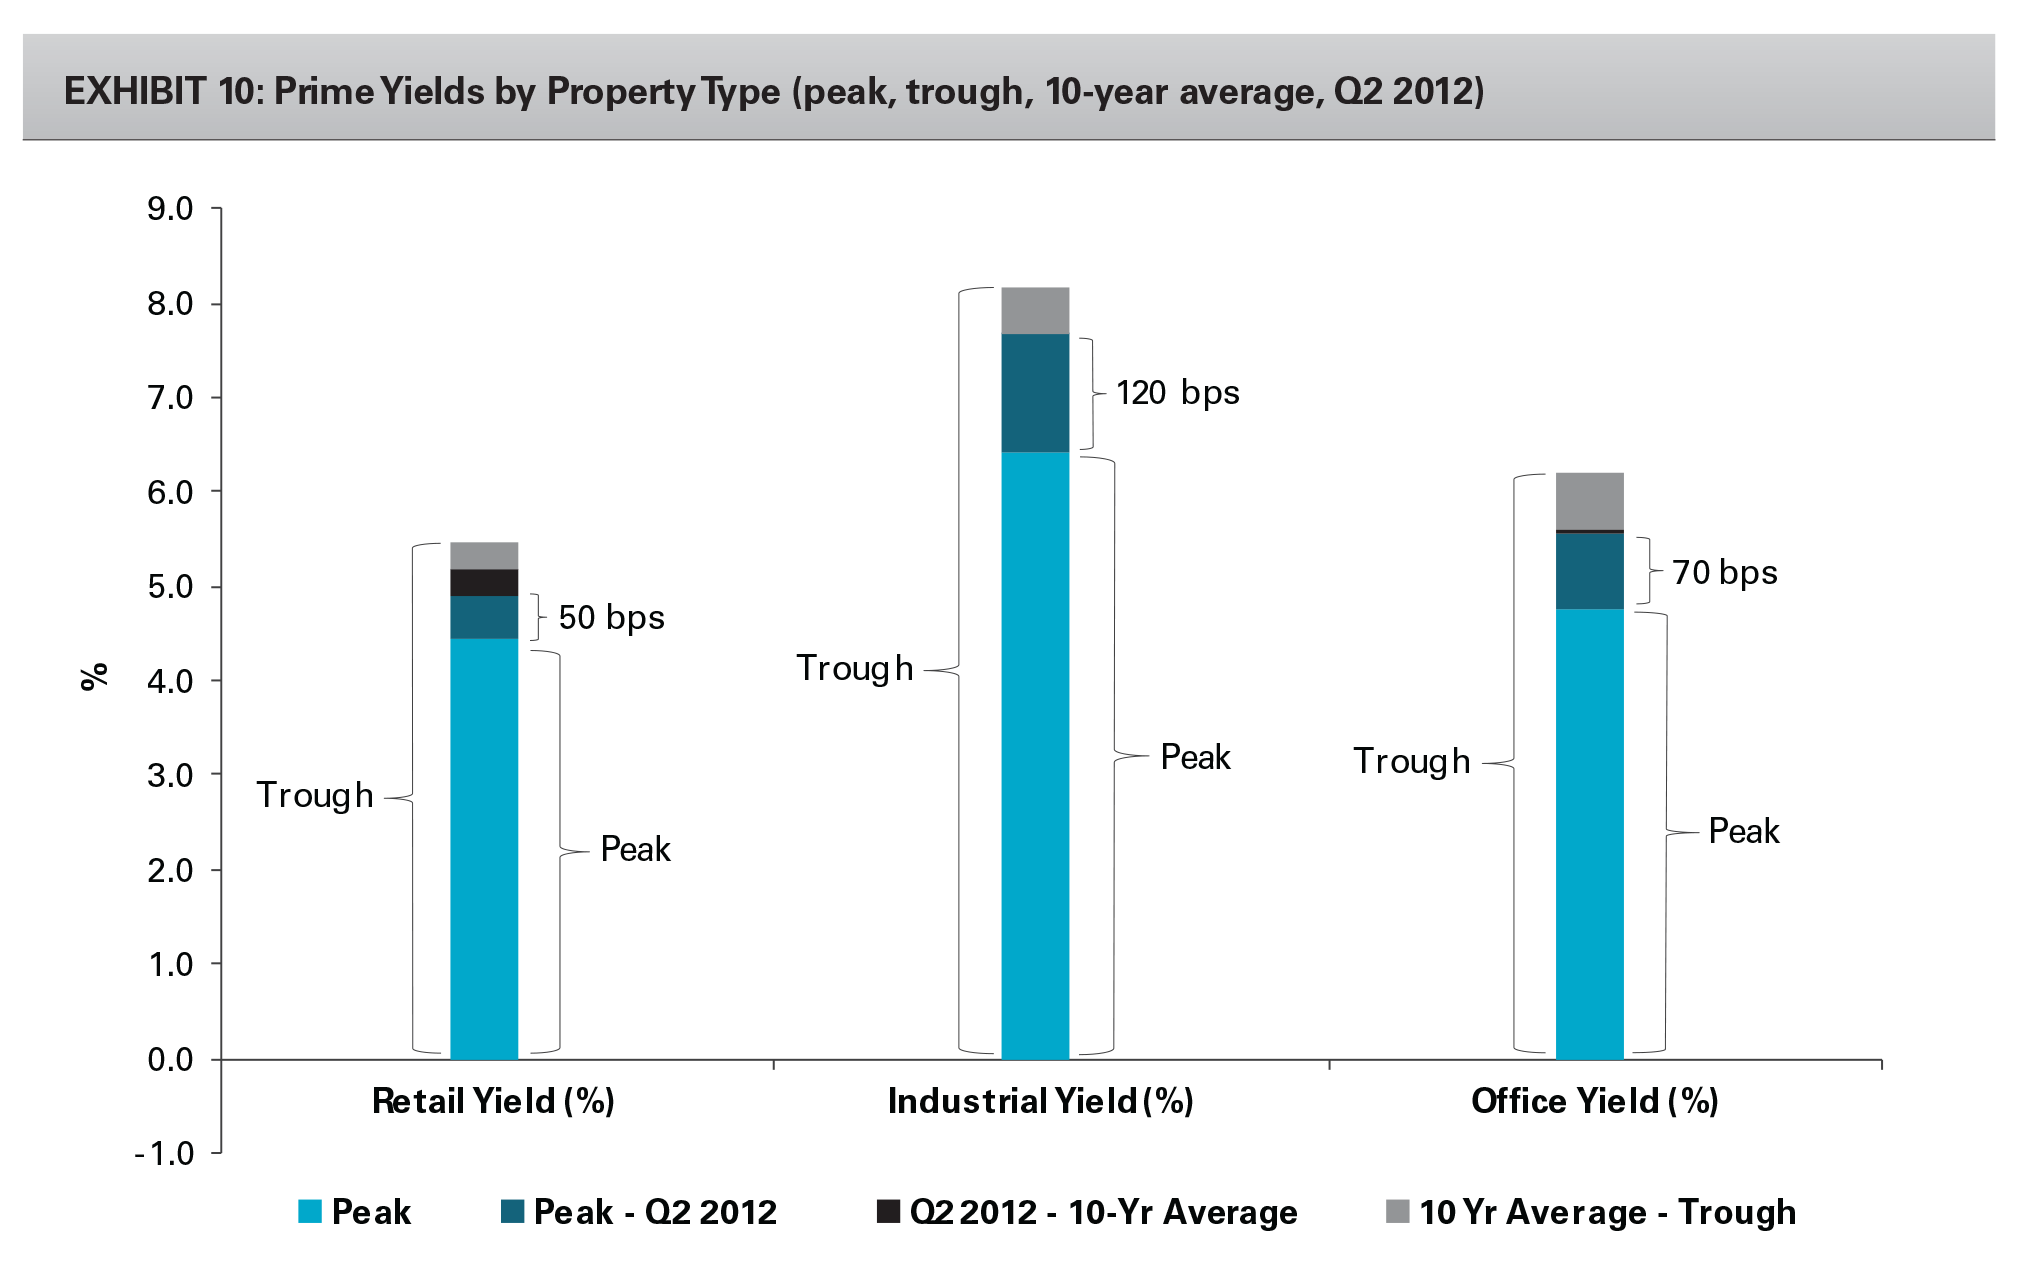 EXHIBIT 10: Prime Yields by Property Type (peak, trough, 10-year average, Q2 2012)